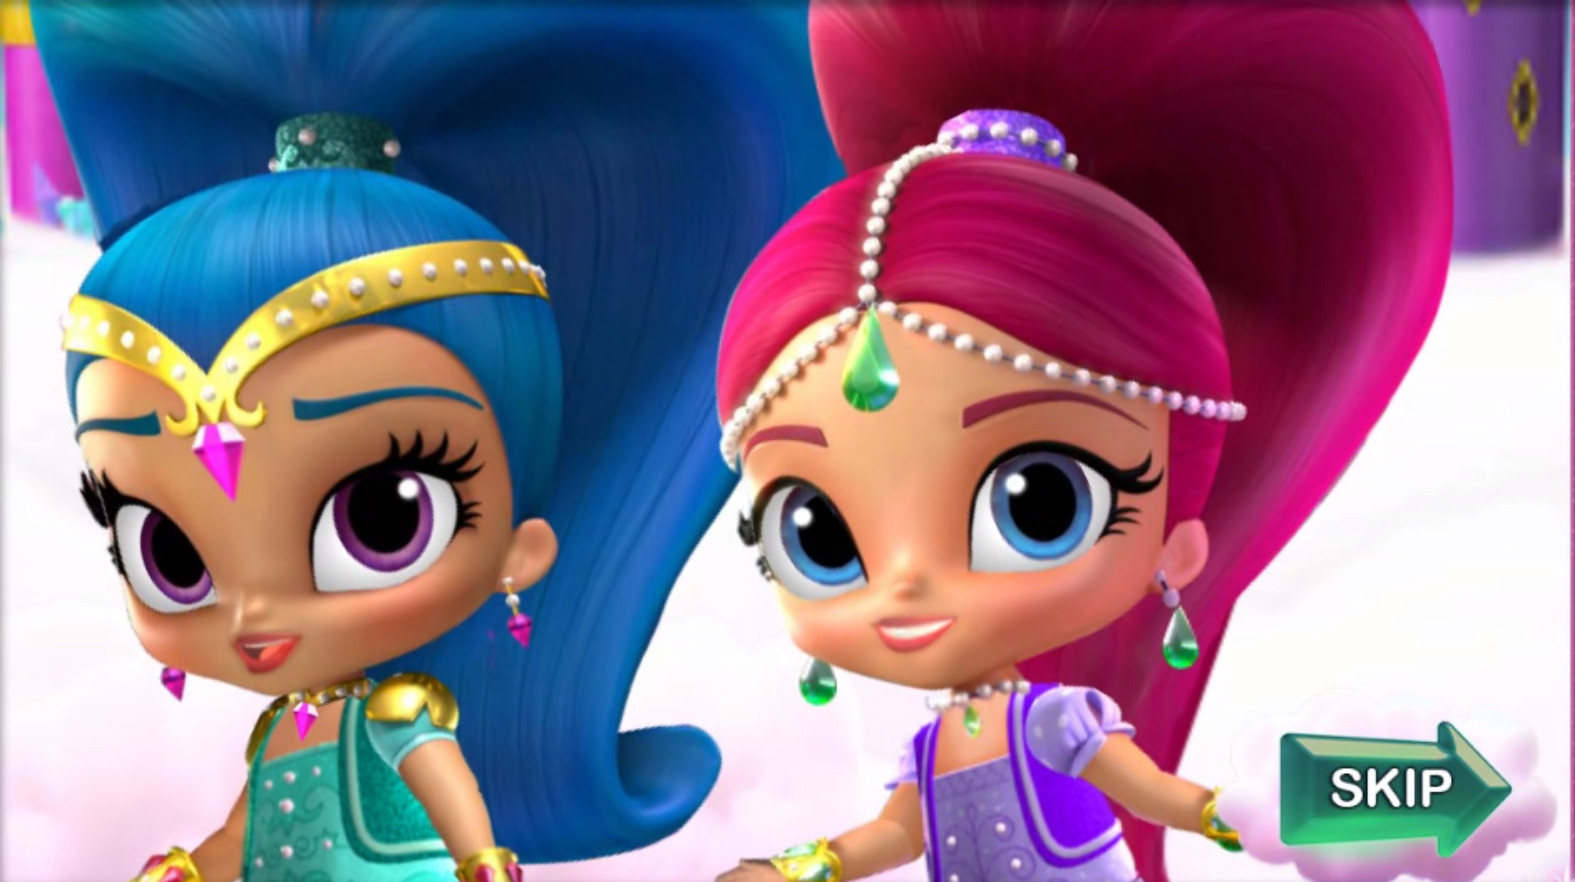 4dd83c7493 All Kids Games - The best online games for your kids: Shimmer and ...